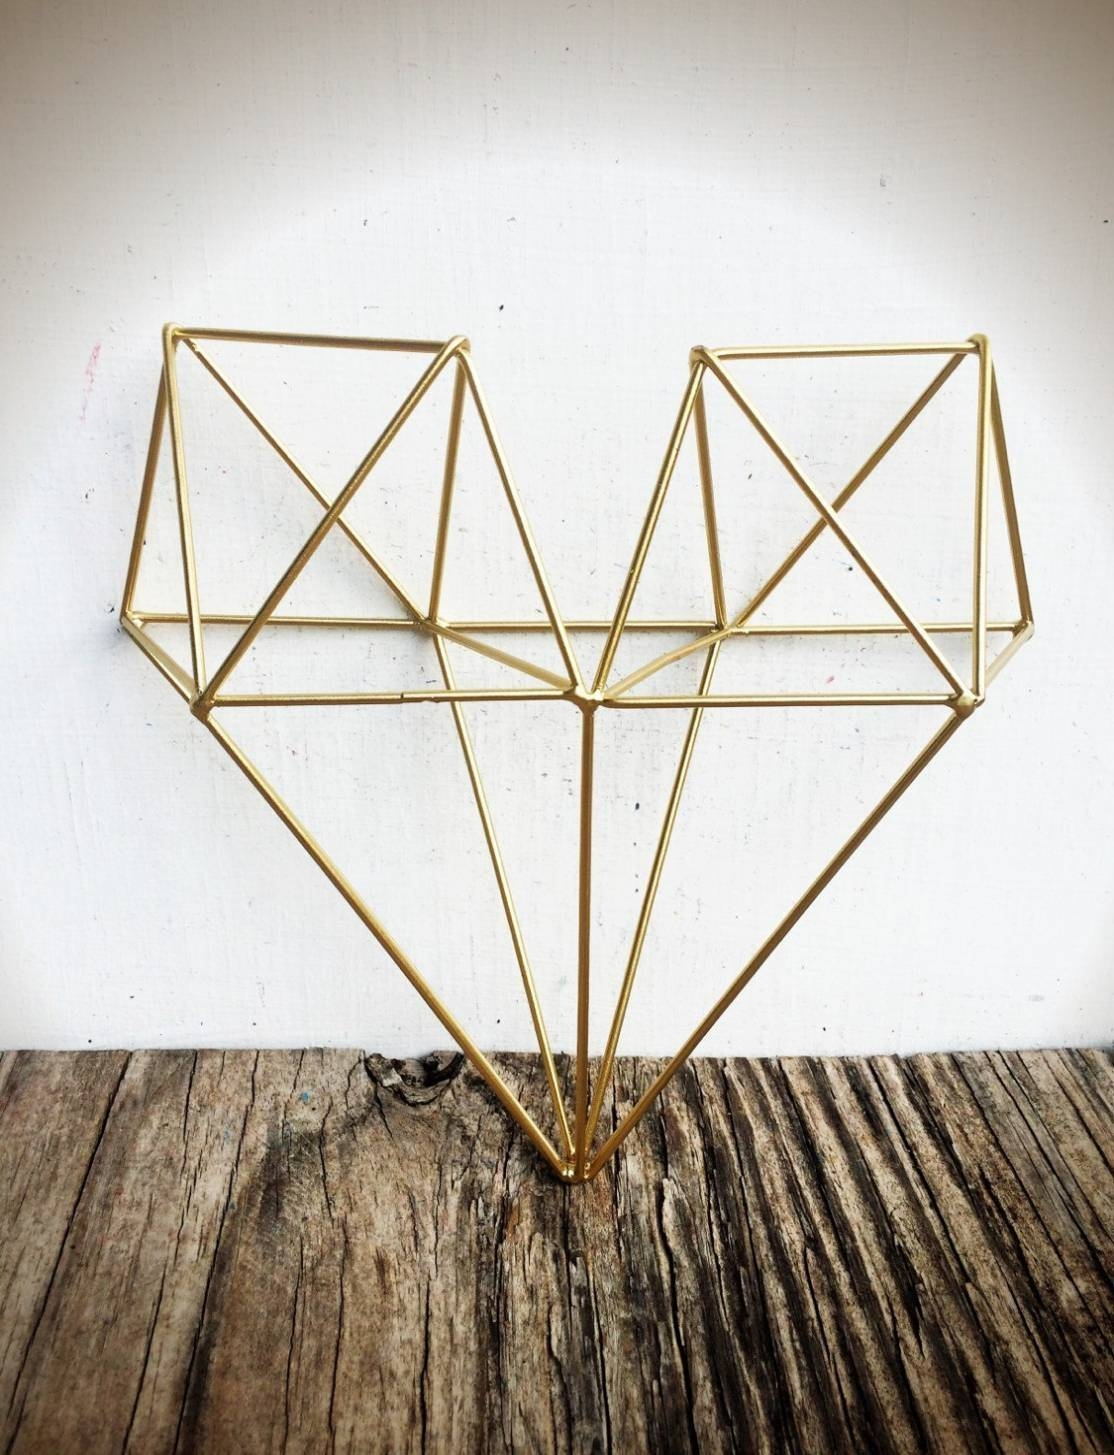 18 Collection Of 3D Metal Wall Art With Regard To Most Popular Geometric Metal Wall Art (View 1 of 20)